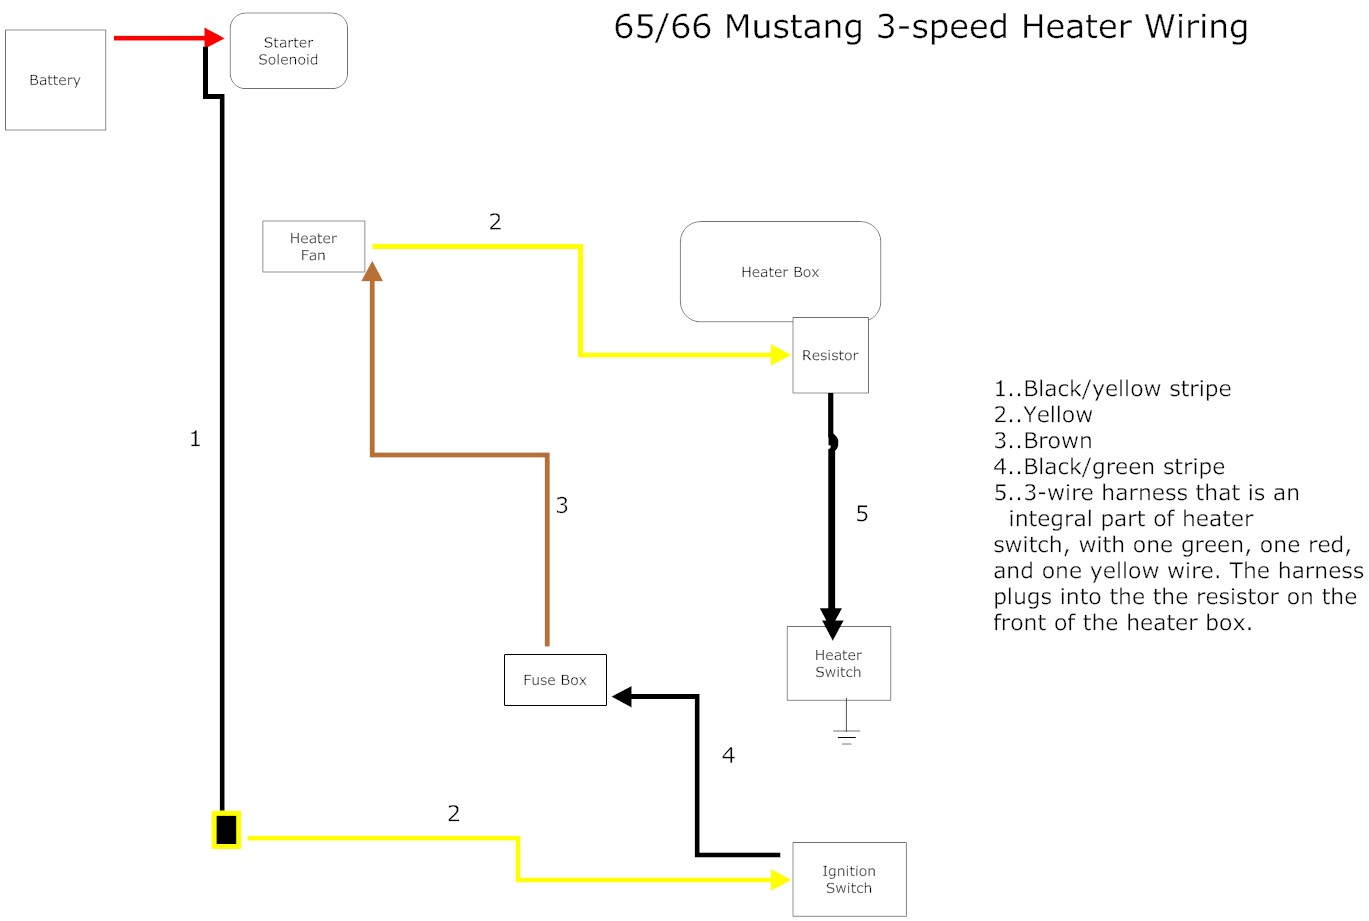 3+speed+heater mustang wiring harness diagram 66 mustang wiring diagram \u2022 free wiring harness 1964 mustang at bayanpartner.co